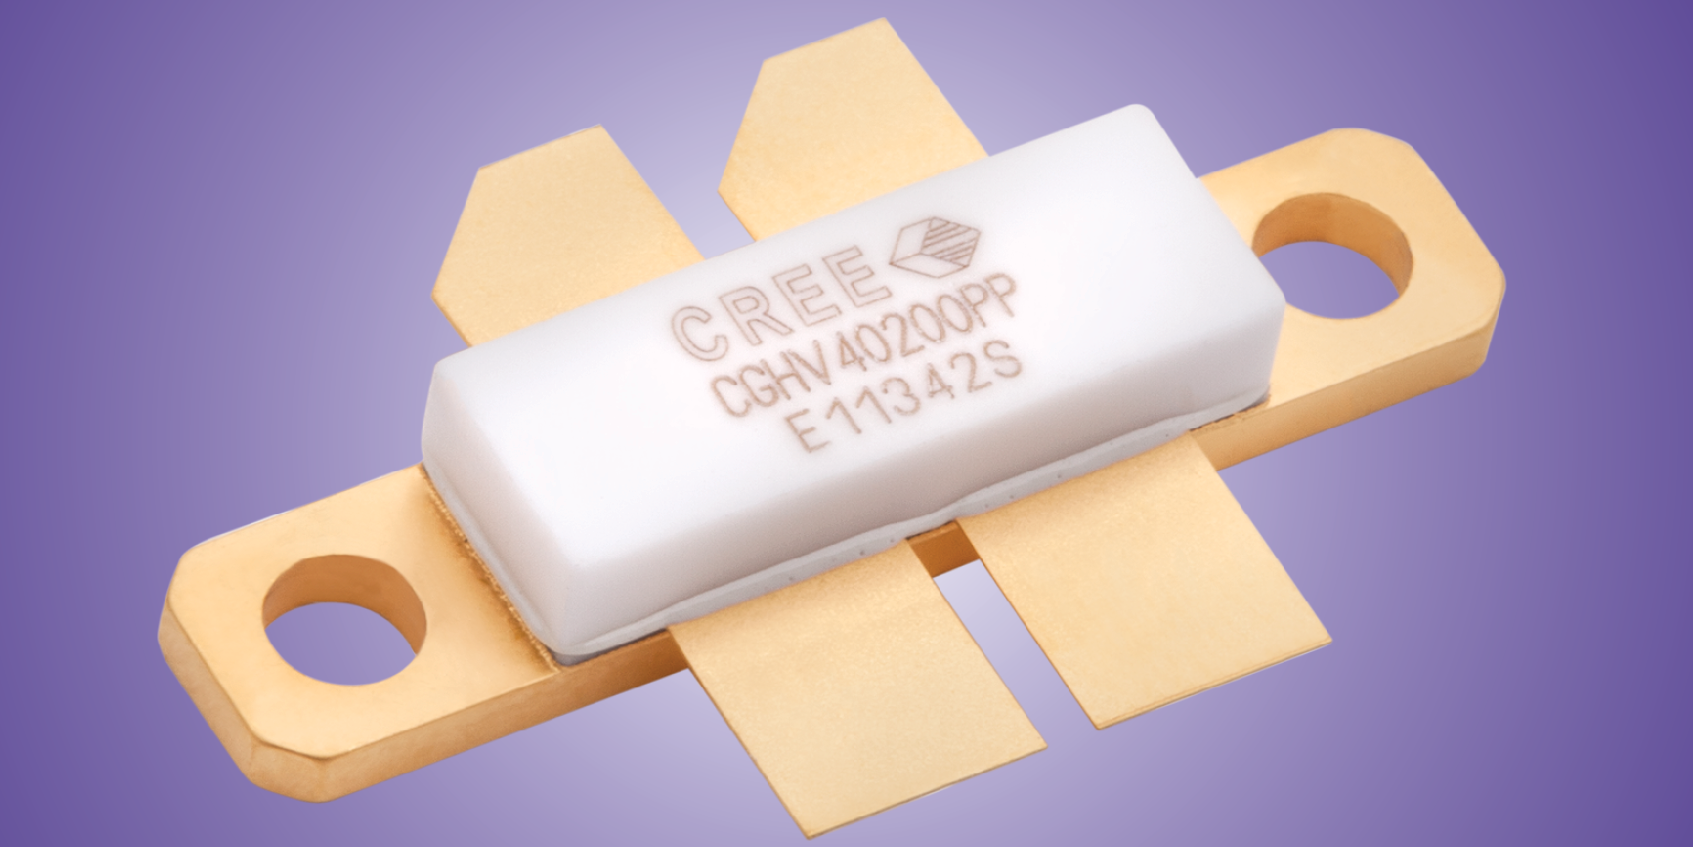 250W Power Device Covers the Frequency Range up to 3.0GHz